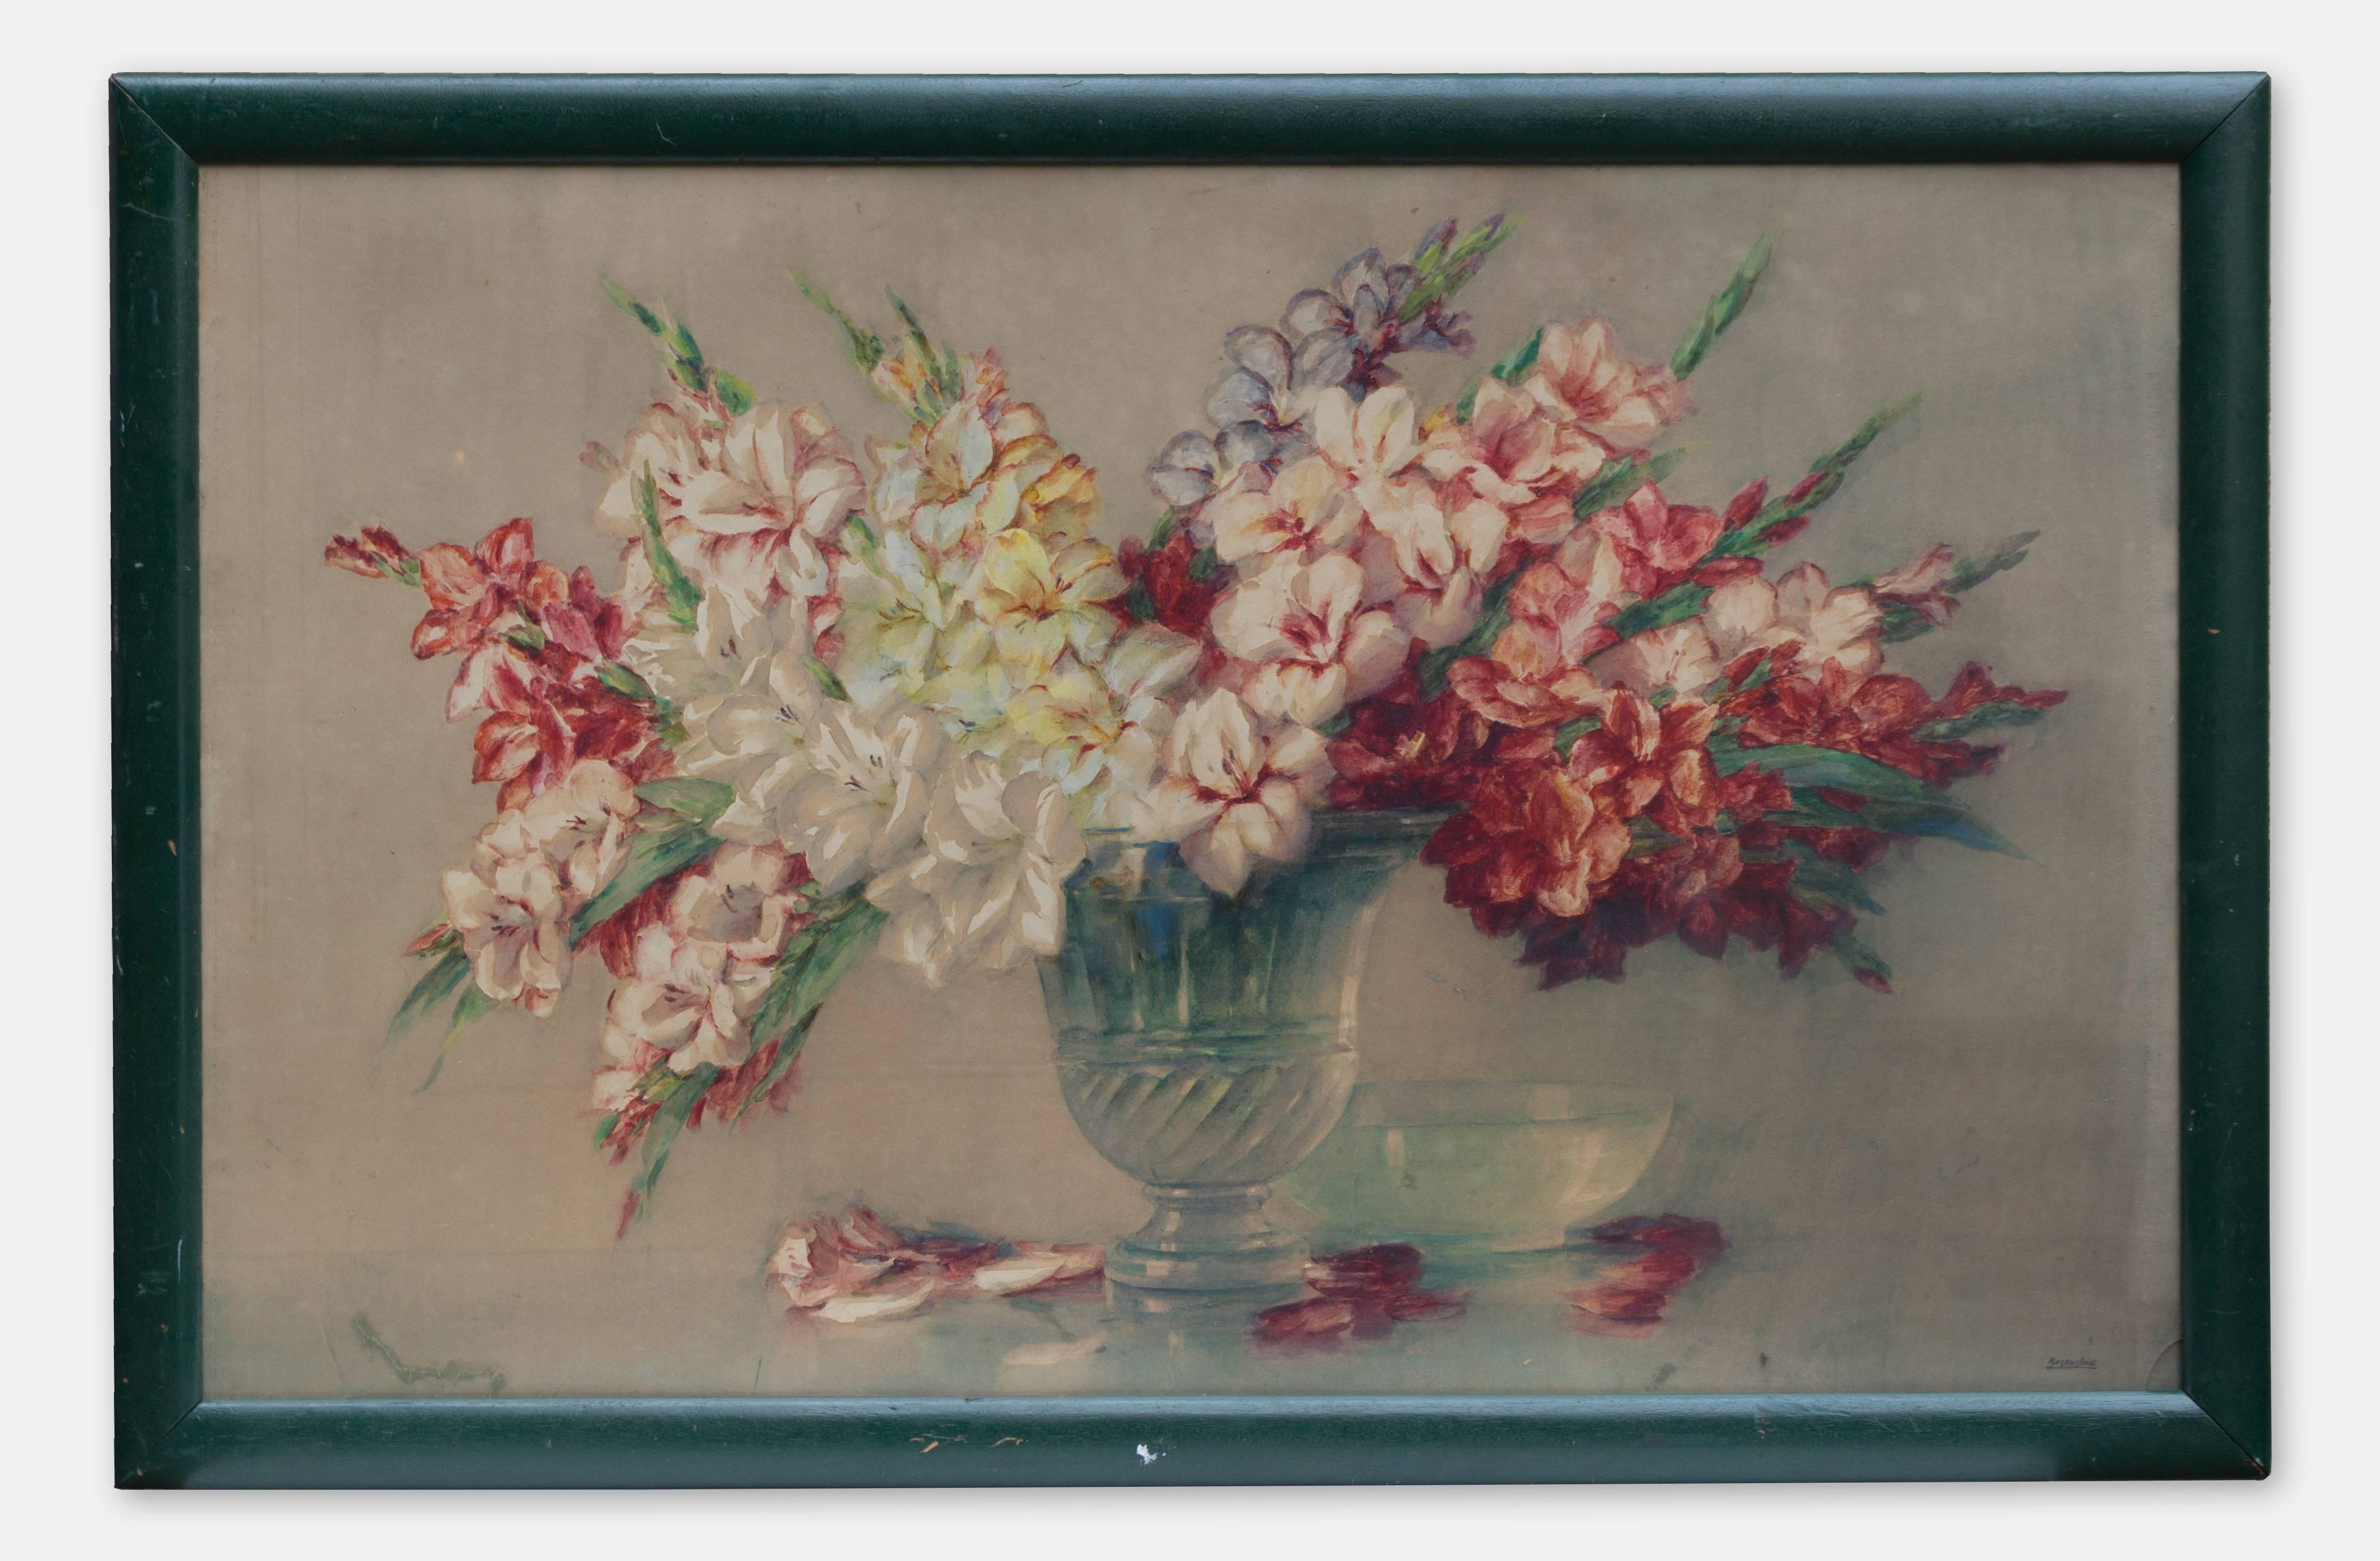 Still Life with Flowers by Isidor Rosenstock